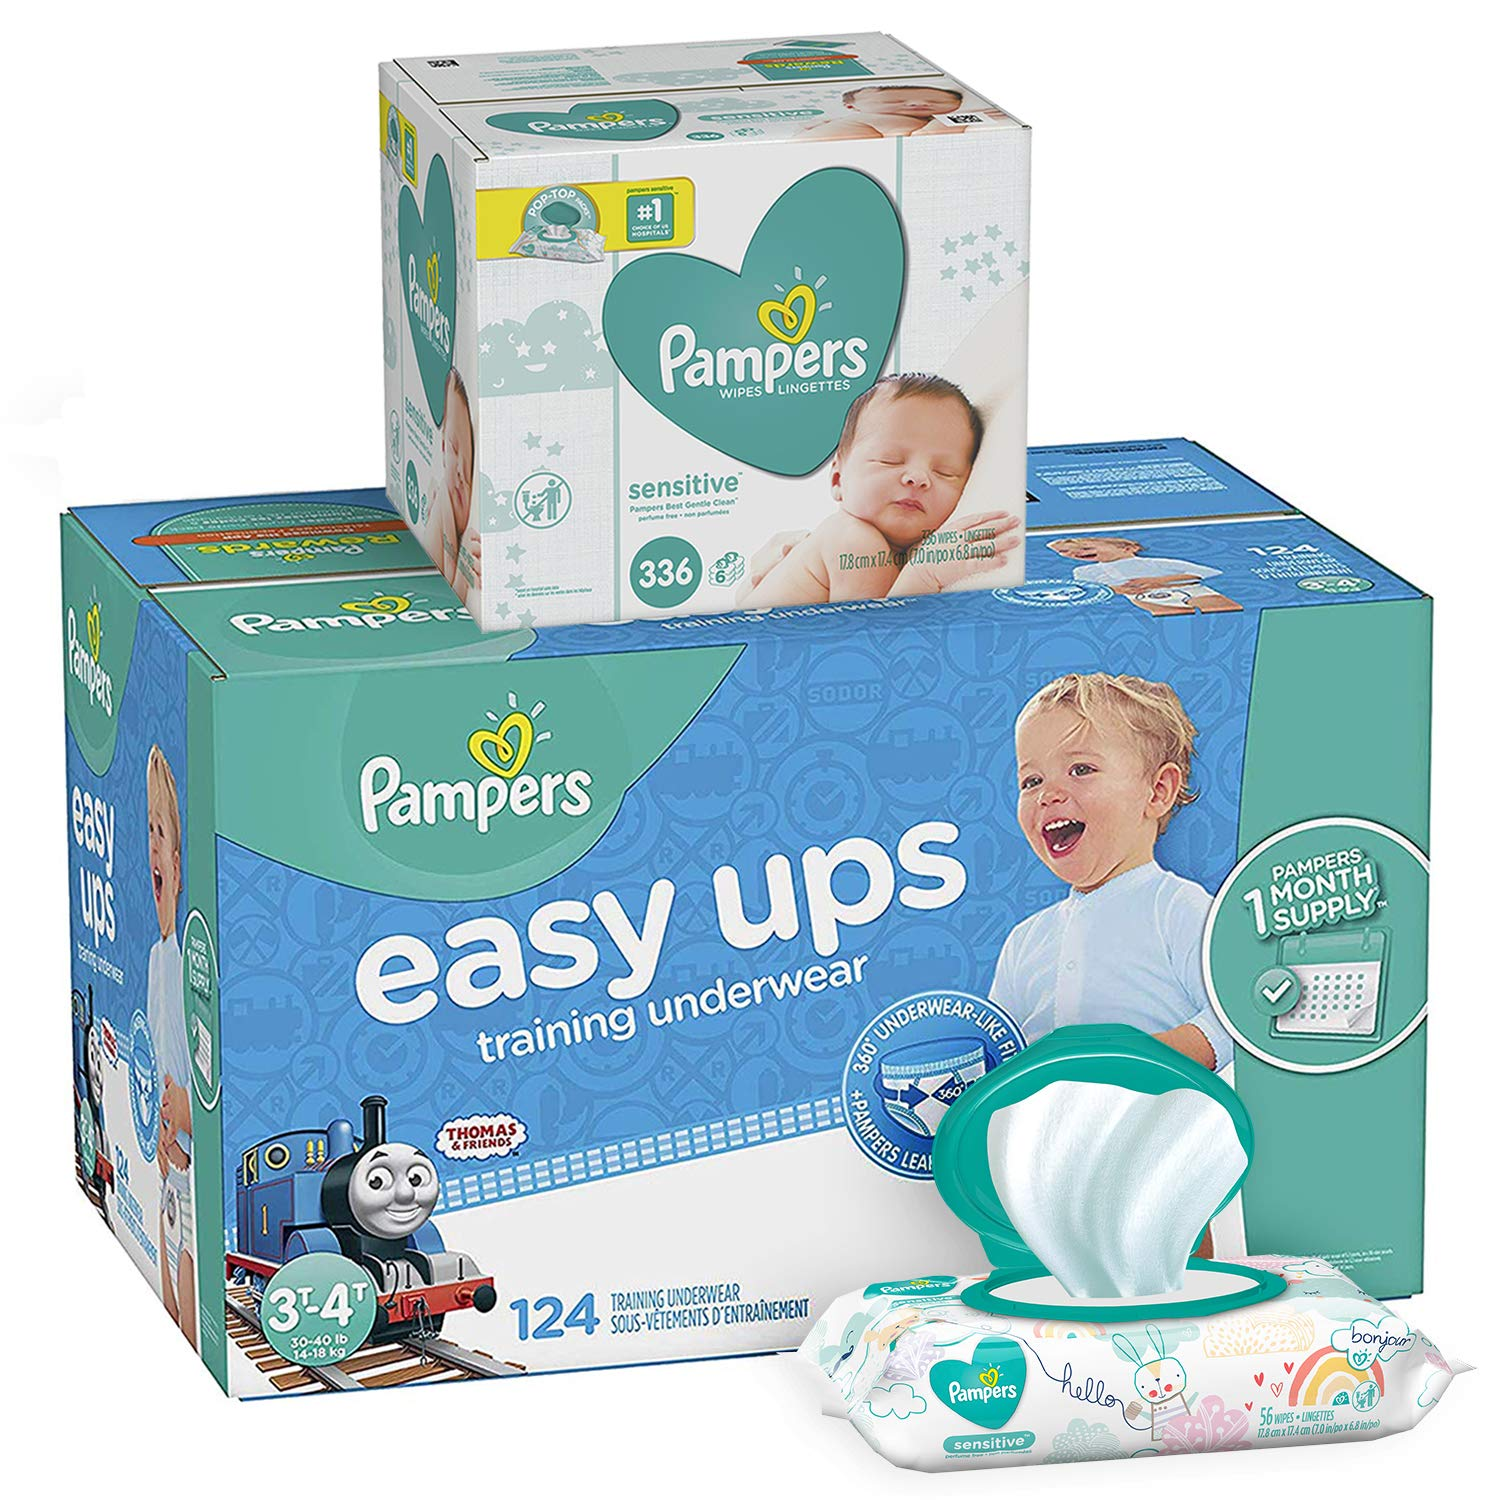 Pampers Easy Ups Pull On Disposable Potty Training Underwear for Boys, Size 5 (3T-4T), 124 Count, ONE MONTH SUPPLY with Baby Wipes Sensitive 6X Pop-Top Packs, 336 Count (Packaging May Vary)